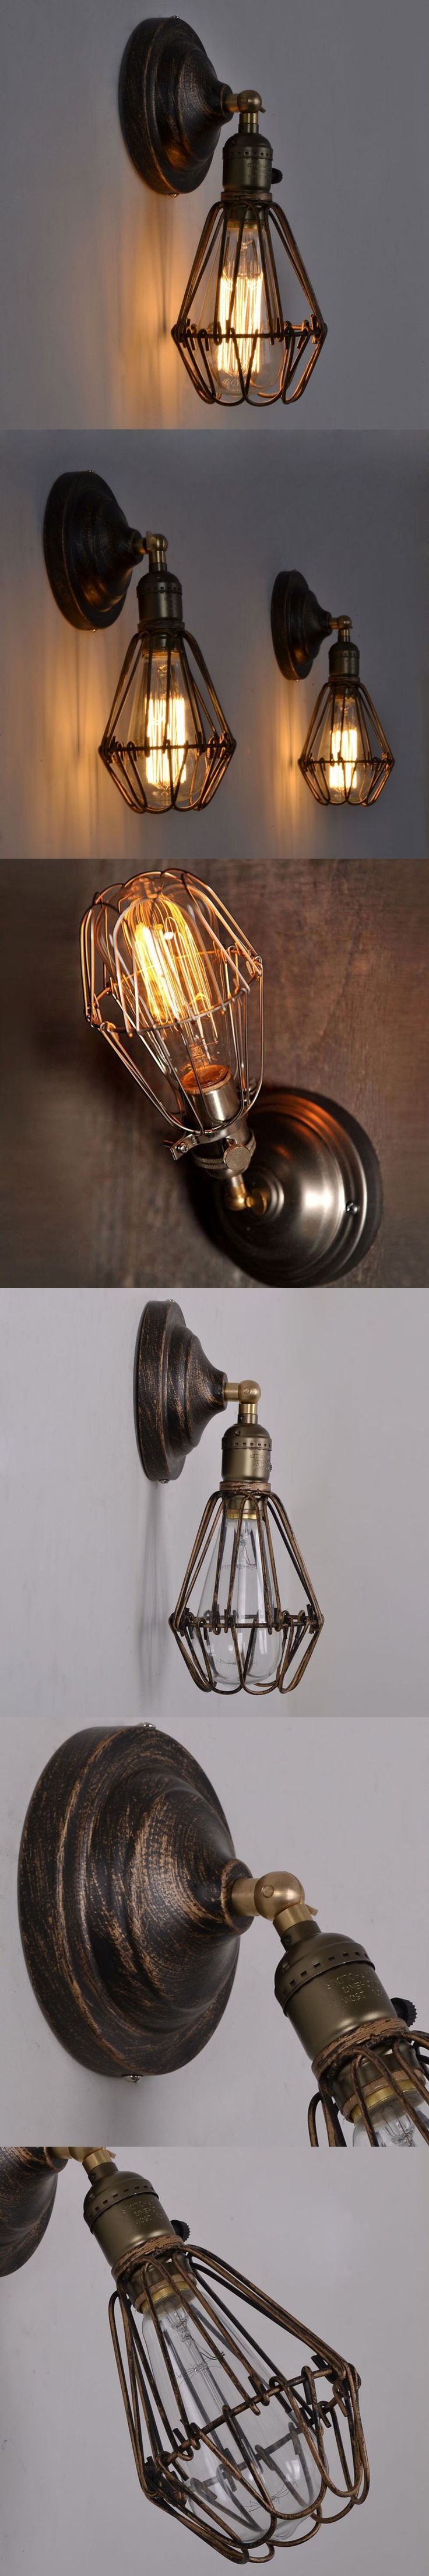 Rustic Wall Lamp Industrial Sconce Loft Light Fixtures Vintage Home Lighting Decor Led Bulb Cage Luminaire Lustre Bedroom Lights $60.09